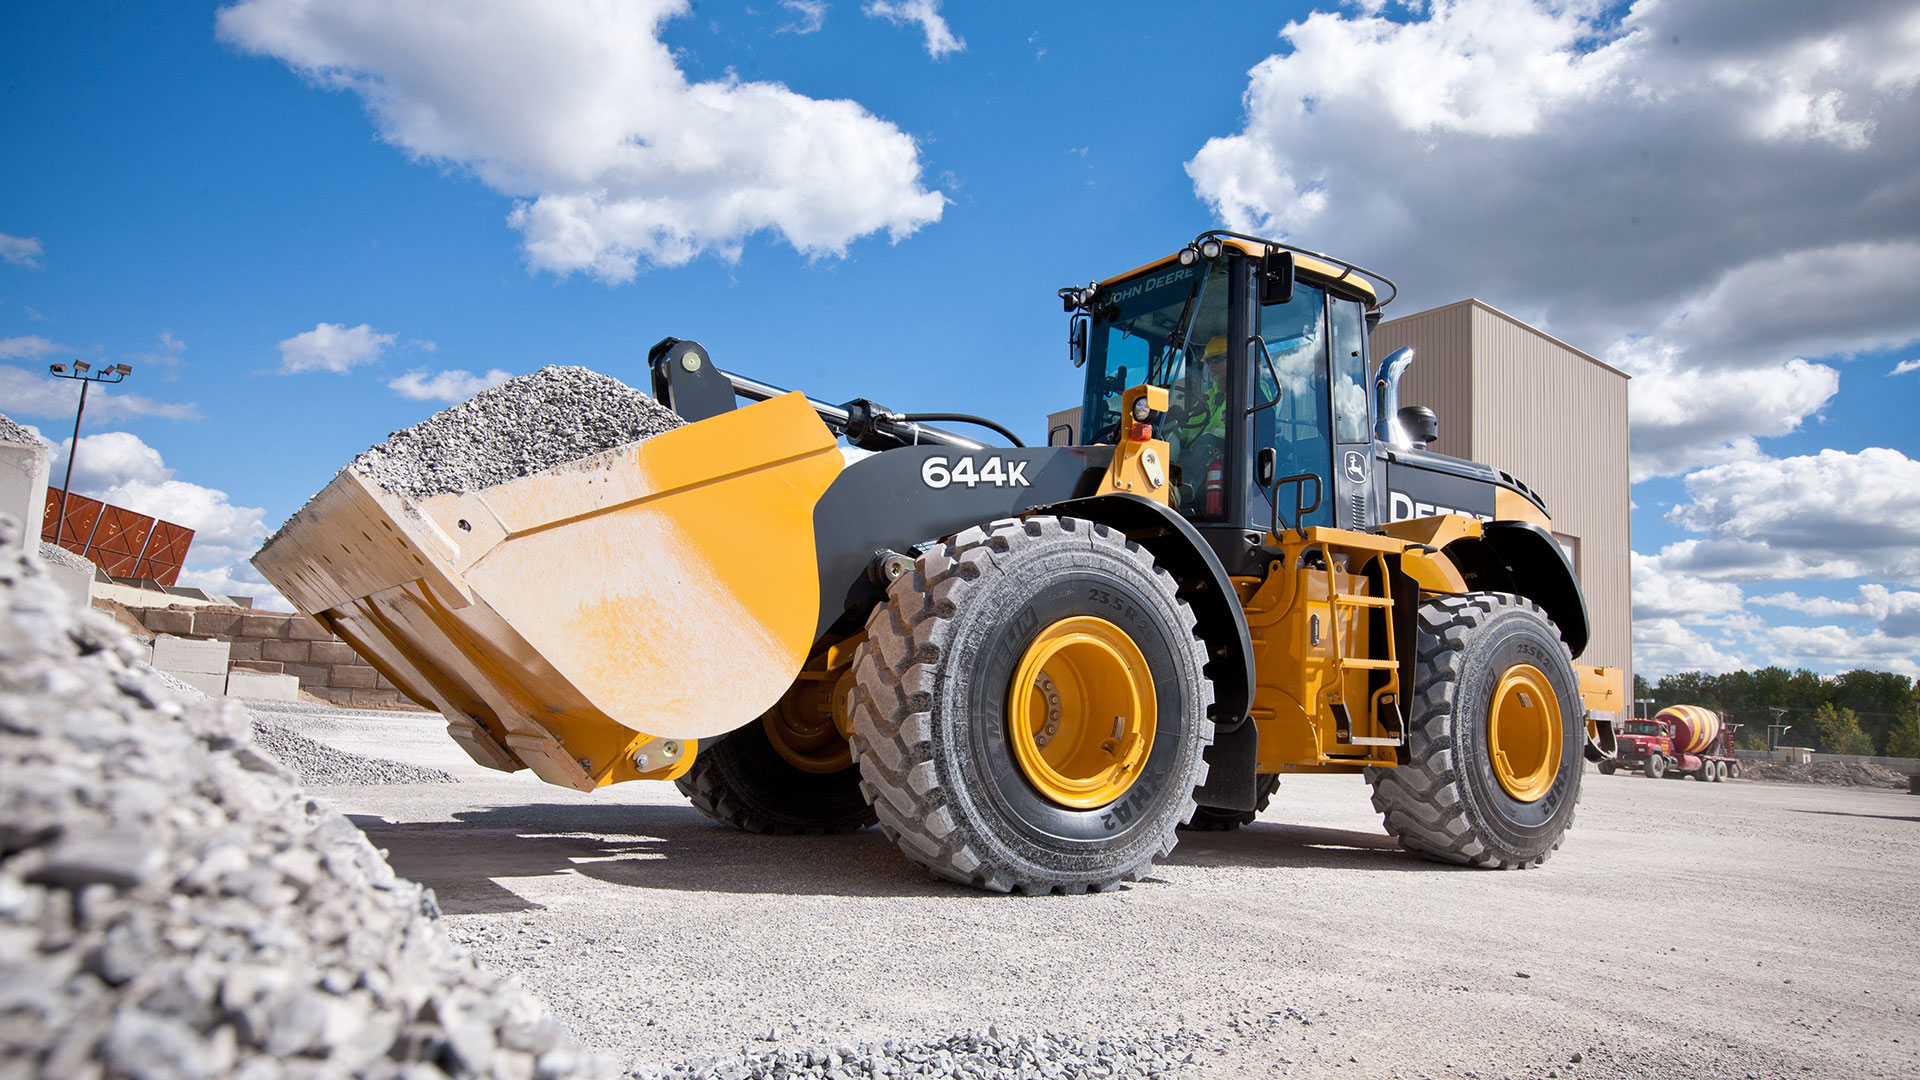 John Deere Construction Equipment Videos See The Machines